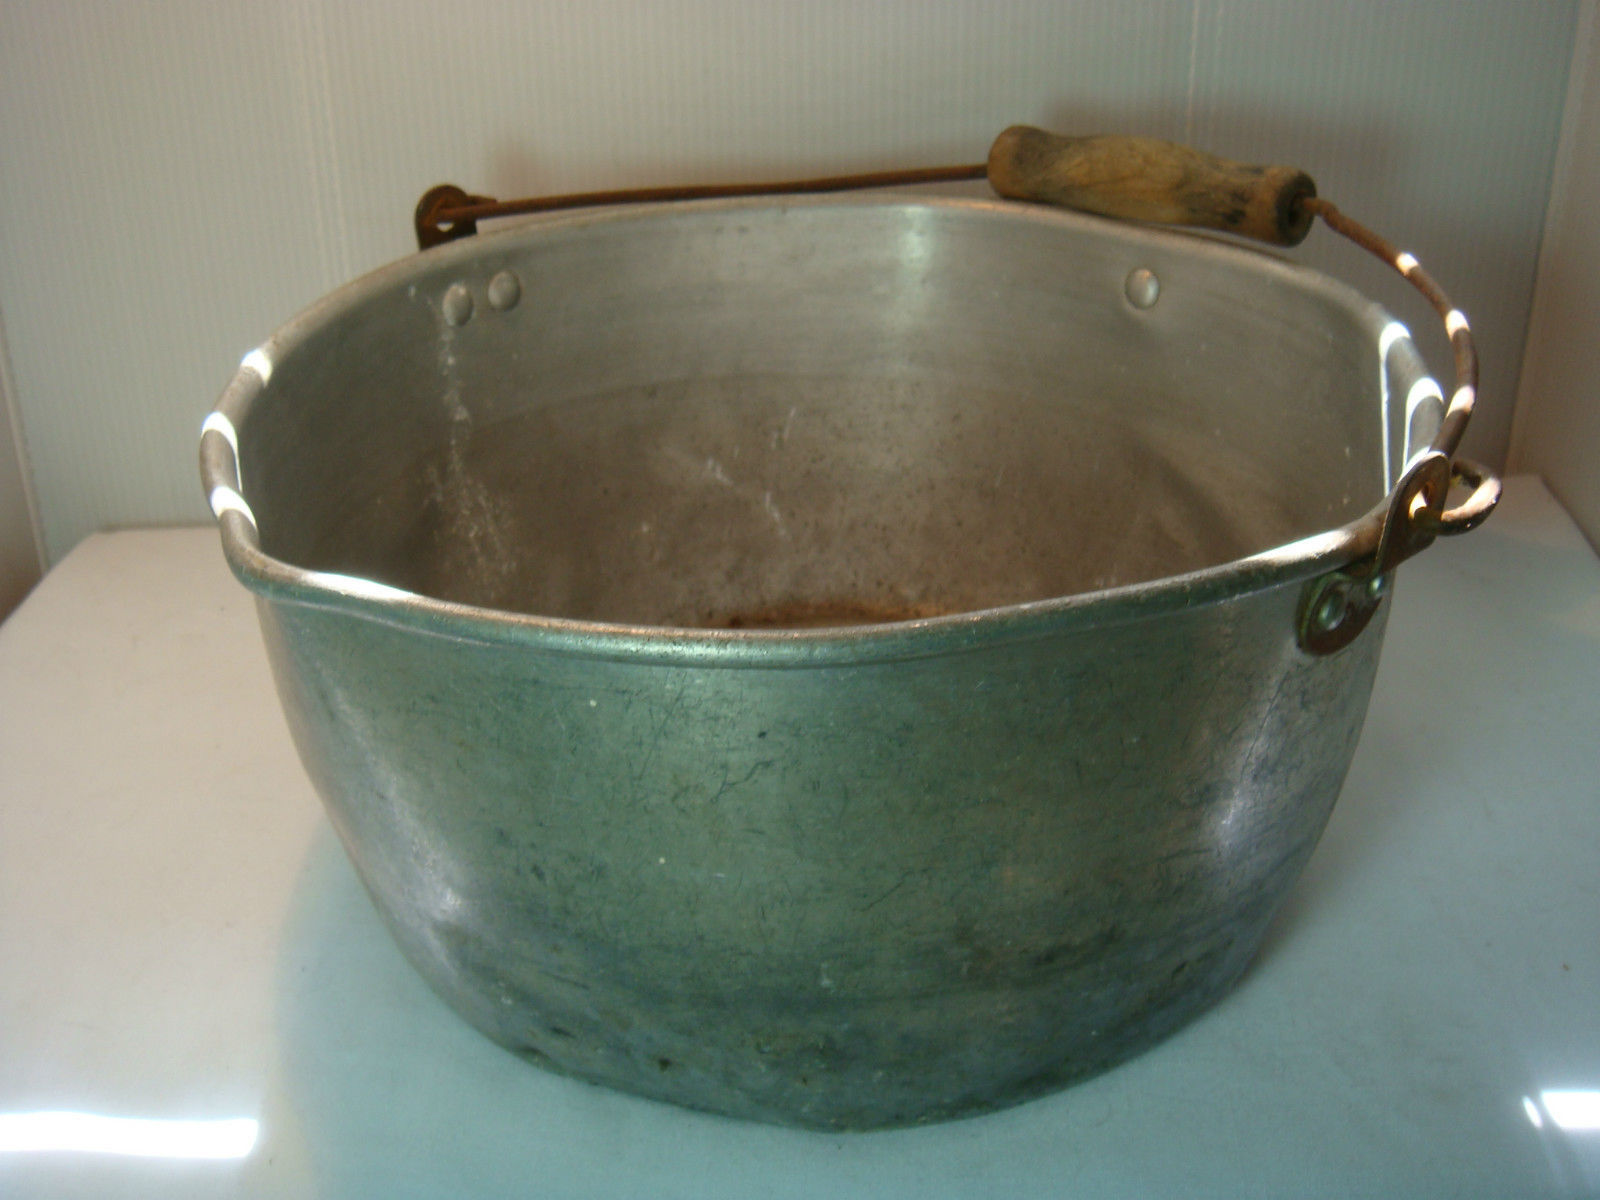 VINTAGE MILKING PAIL - KITCHEN PAN - ALUMINUM - VERY USED & VERY OLD